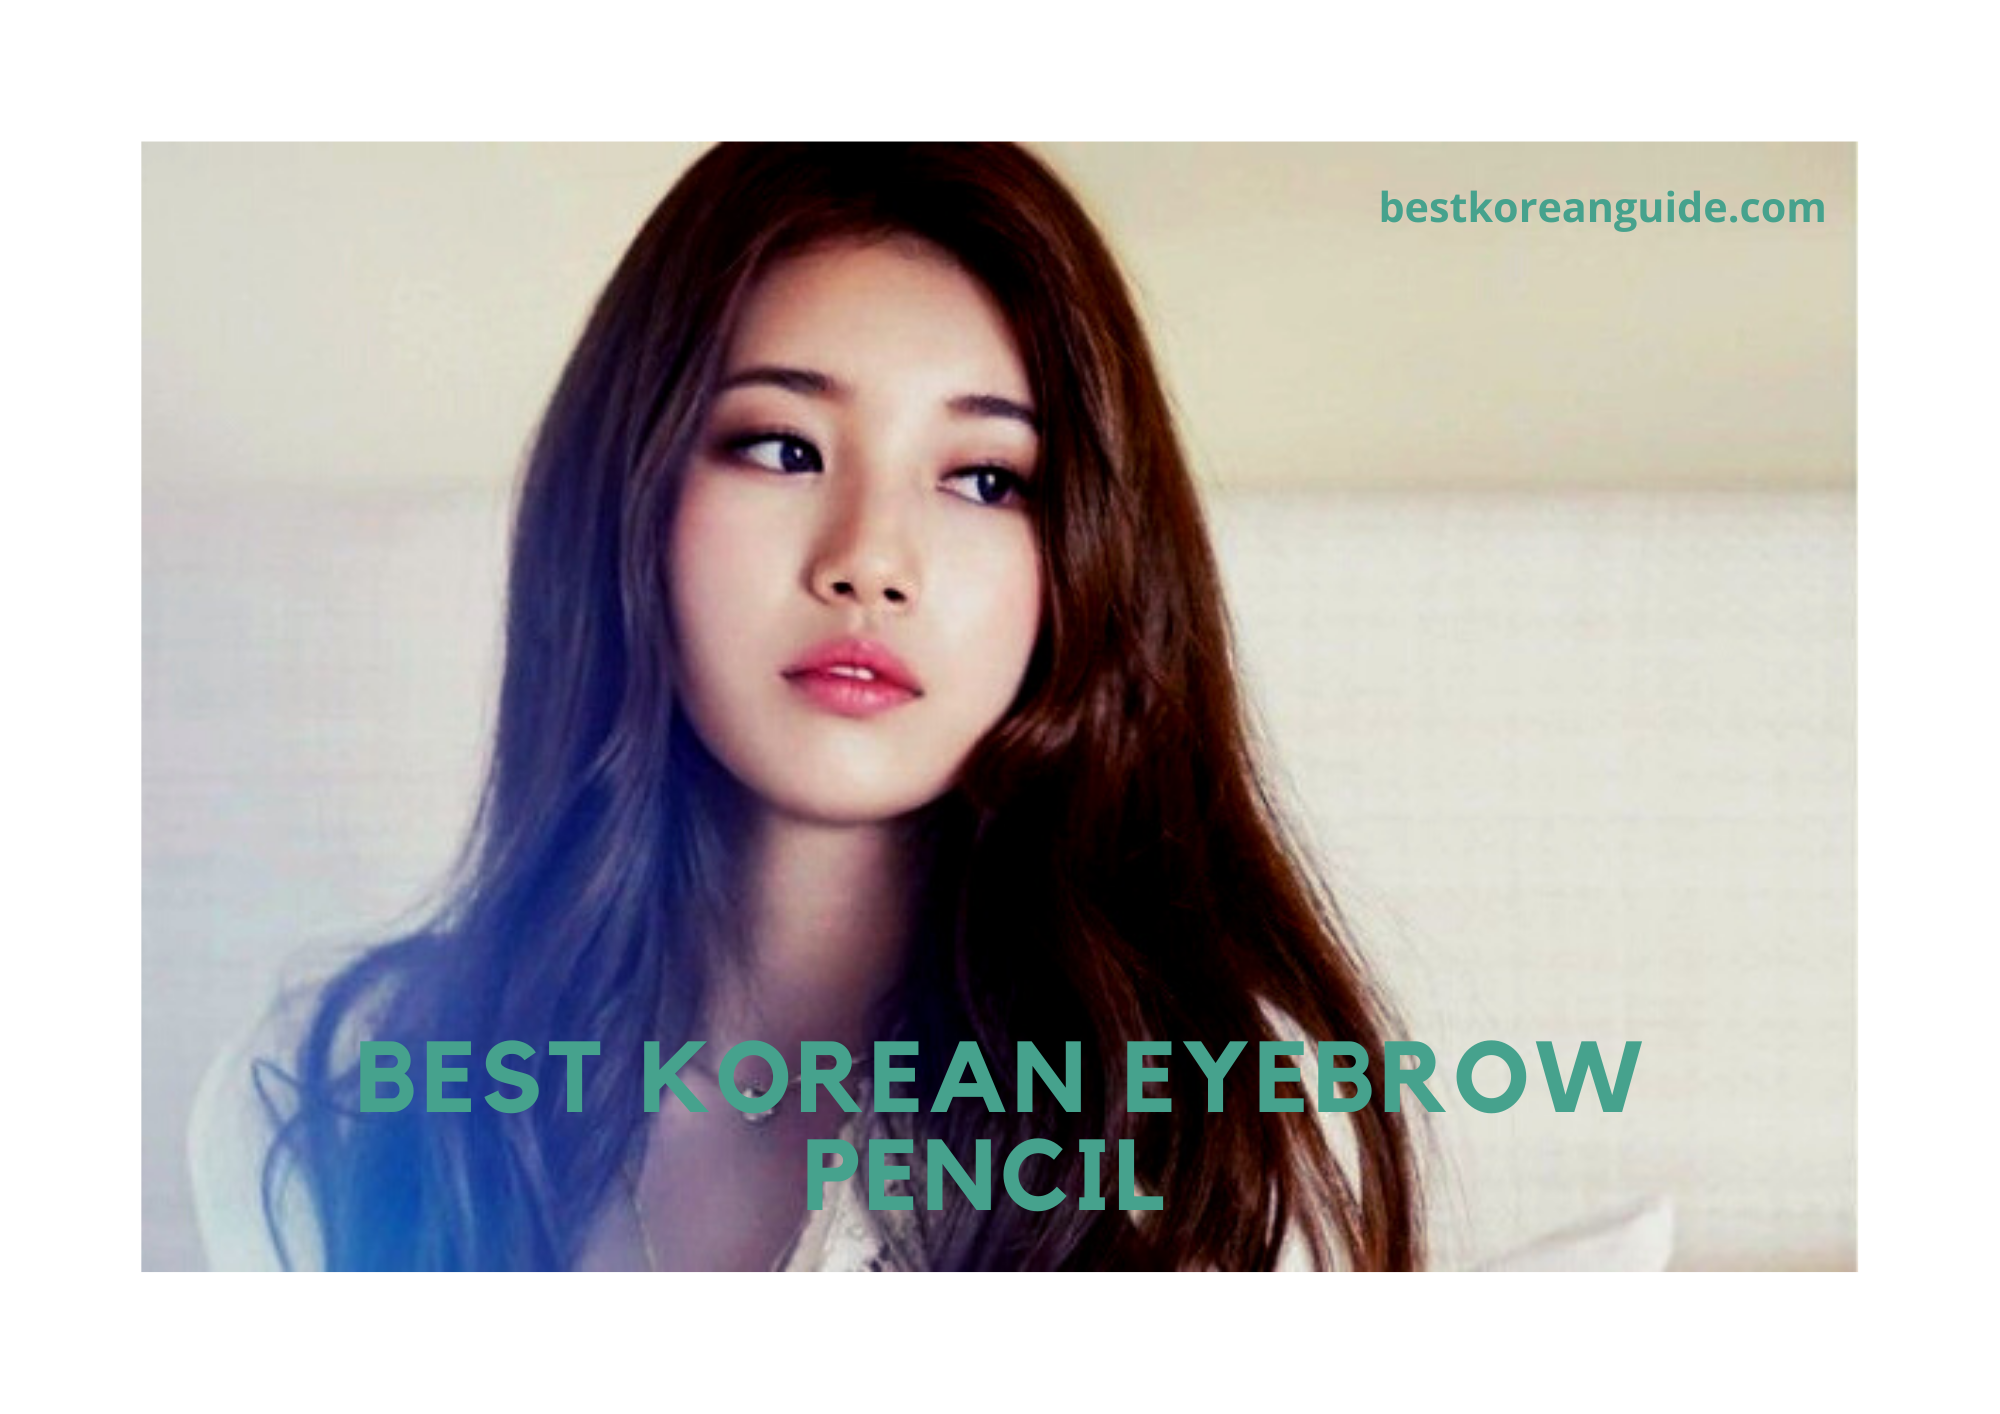 BEST KOREAN EYEBROW PENCIL